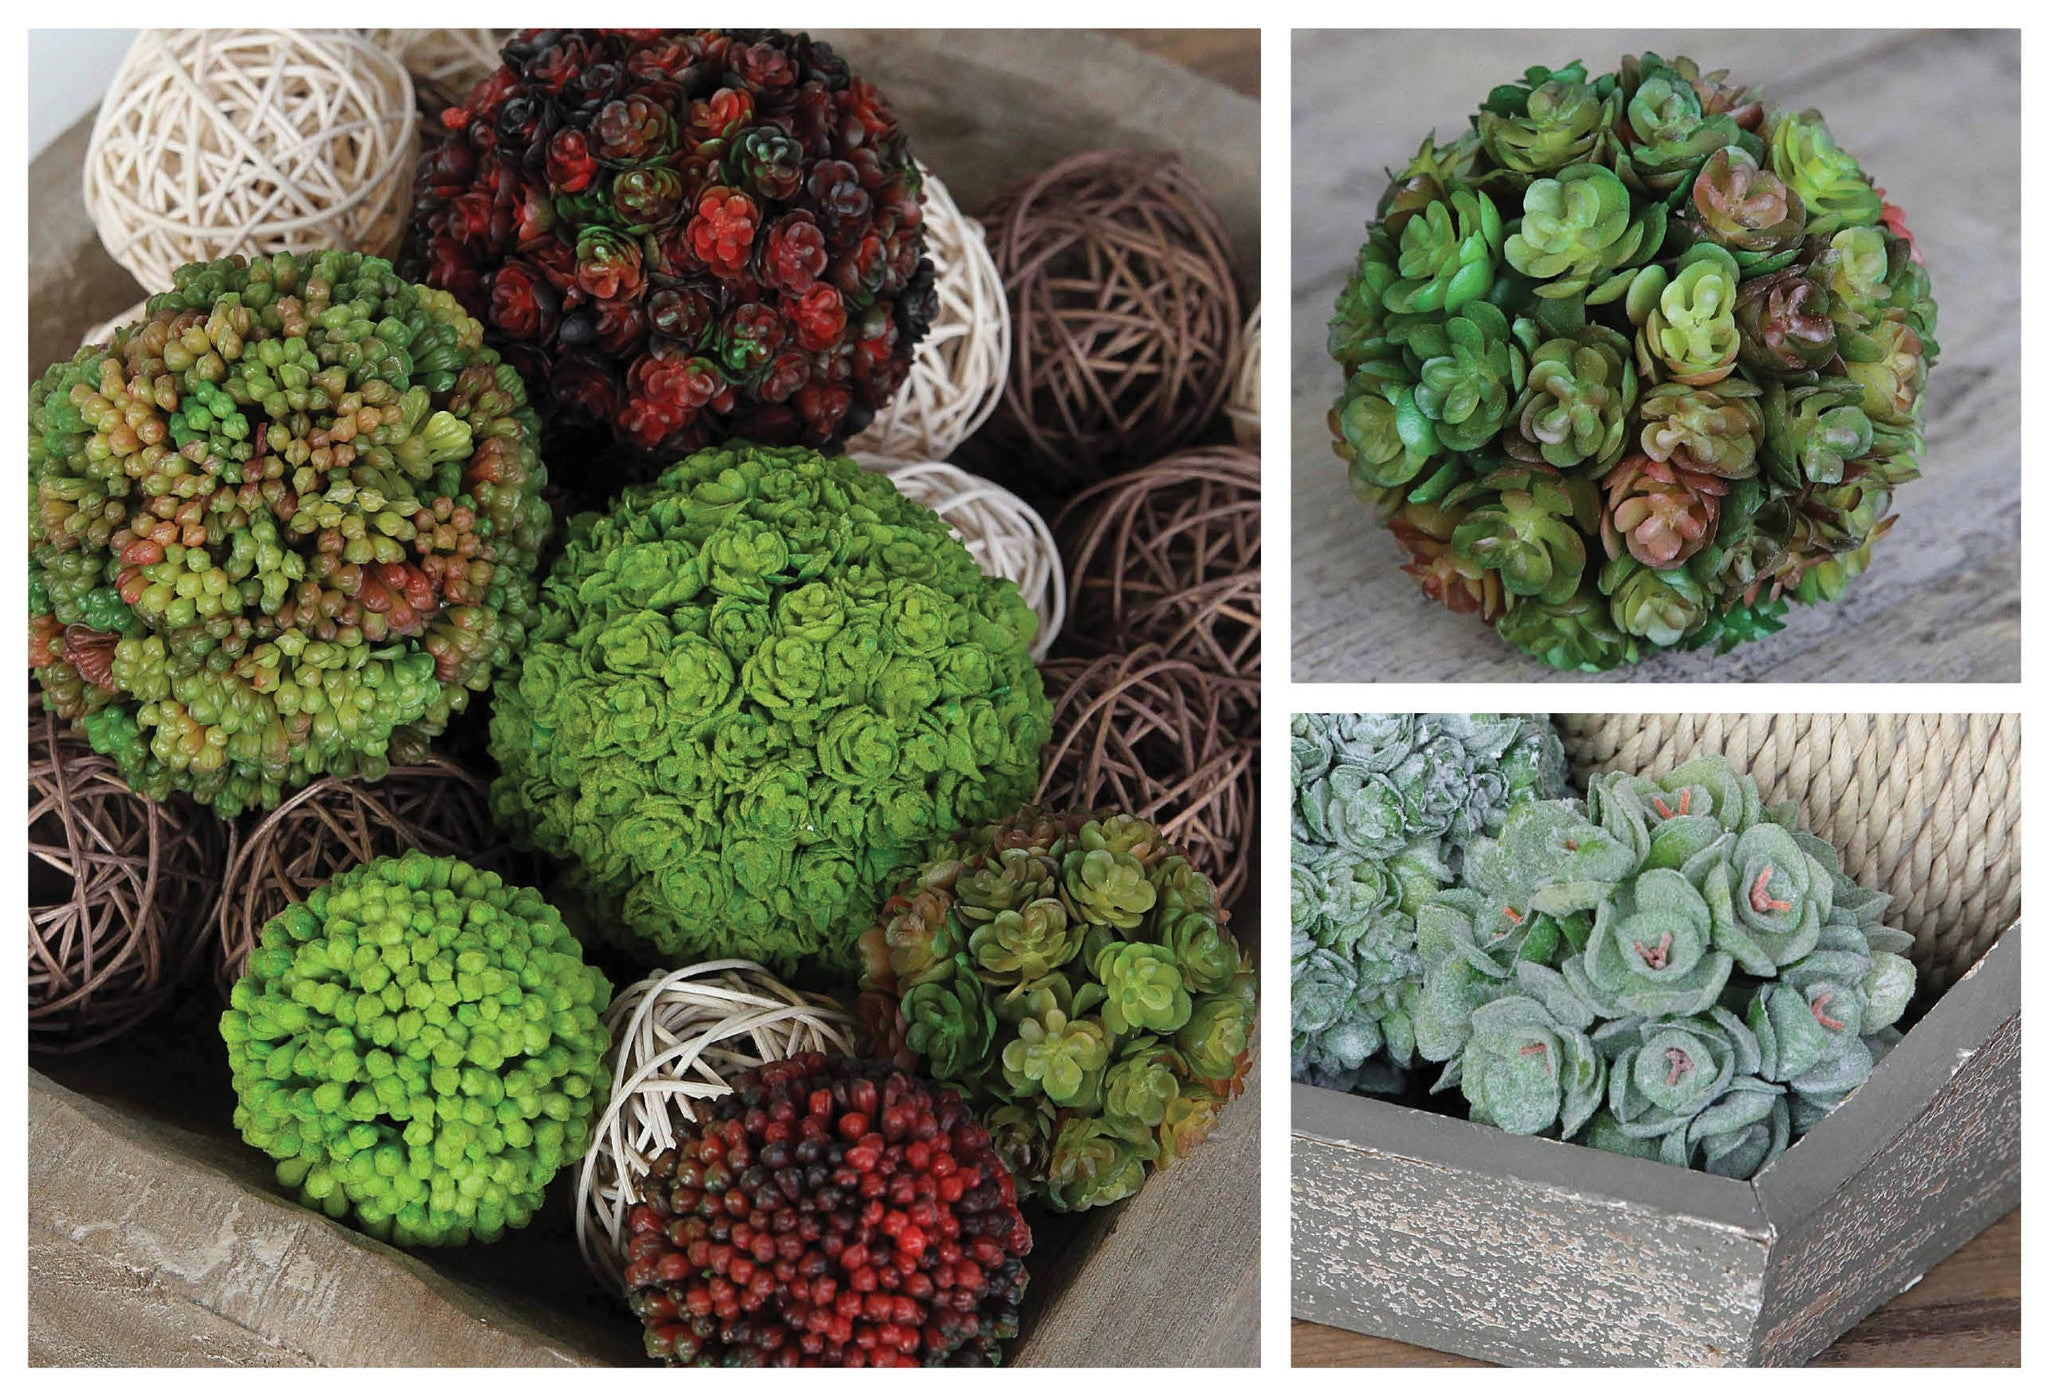 Decorative Floral Orbs